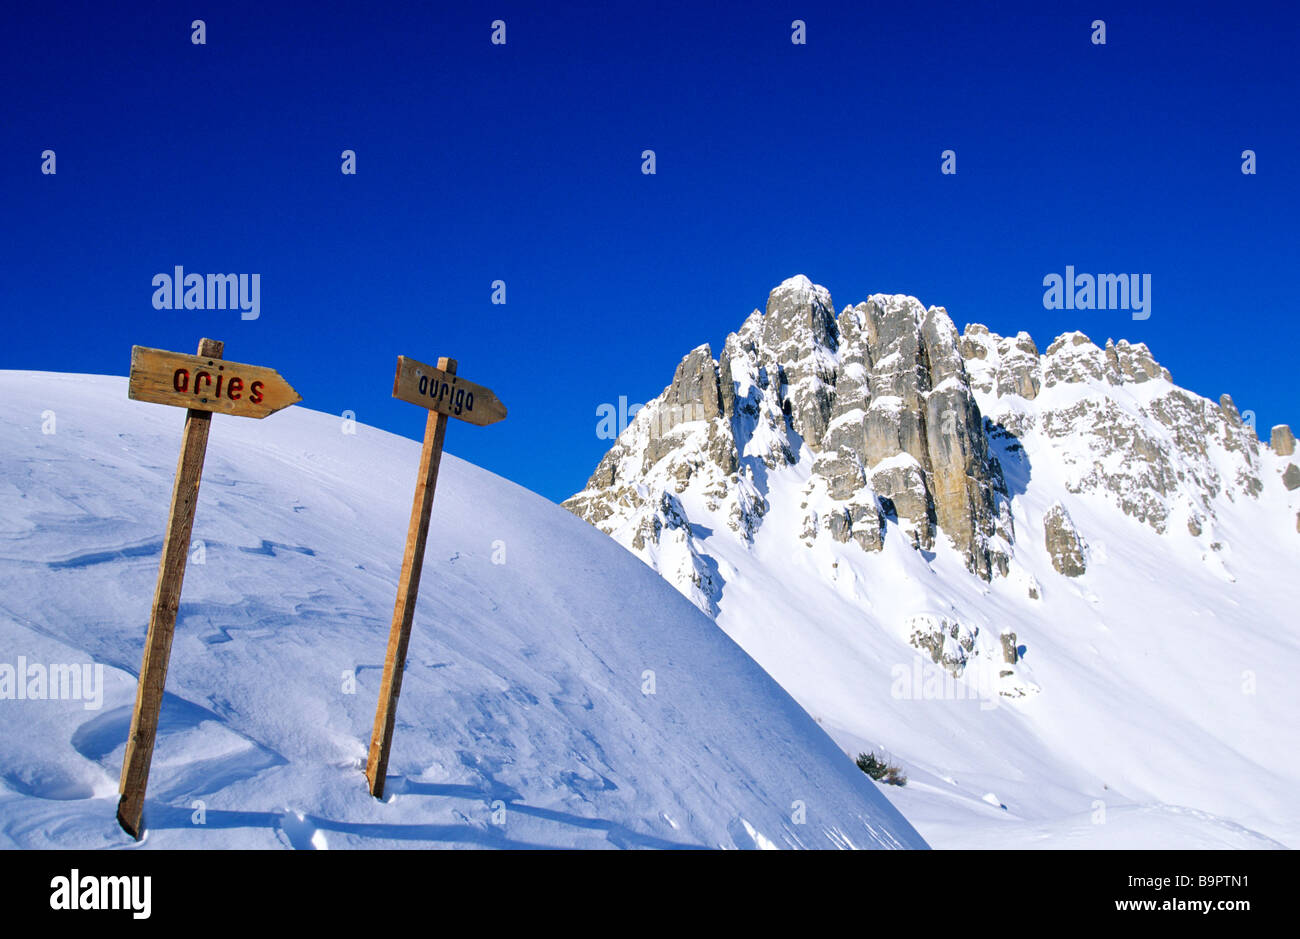 reallon stock photos & reallon stock images - alamy